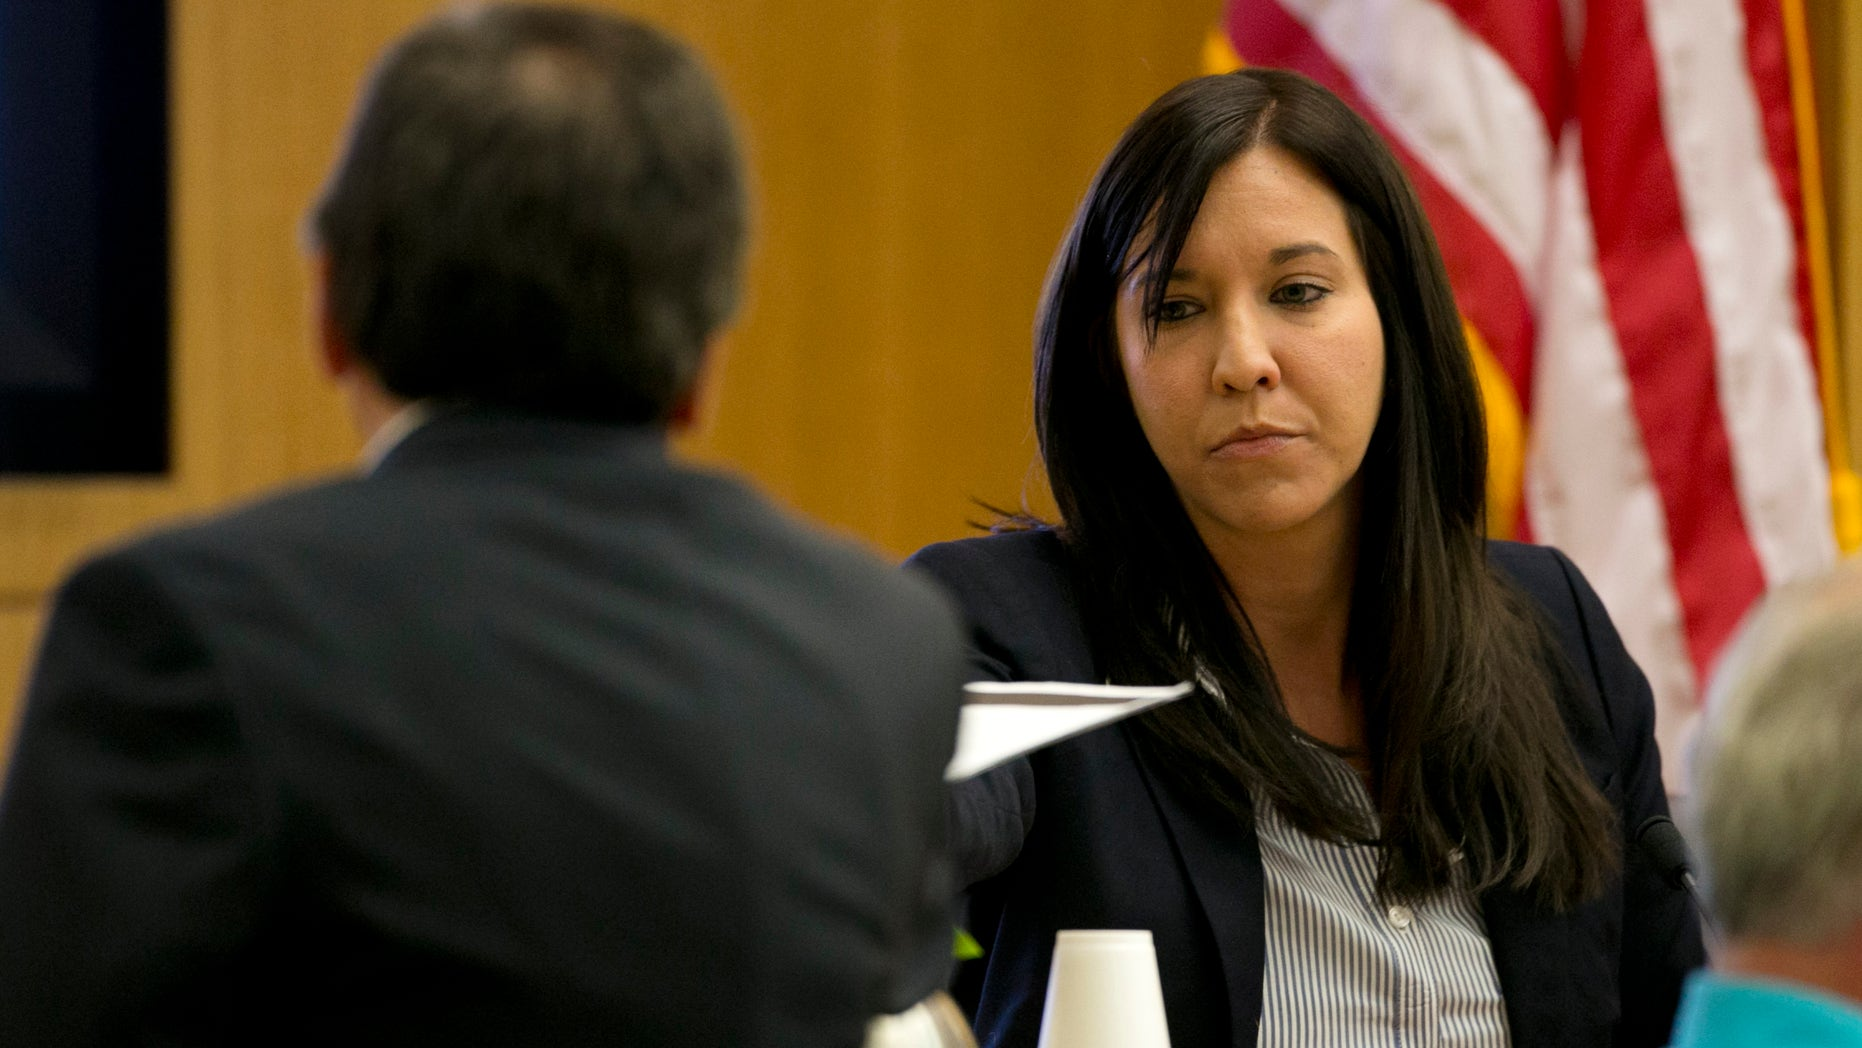 Dr. Janeen DeMarte an expert witness for the prosecution takes evidence from Prosecutor Juan Martinez during the Jodi Arias trial at Maricopa County Superior Court in Phoenix on Tuesday, April 16, 2013. Defense attorneys rested their case Tuesday after about 2 1/2 months of testimony aimed at portraying Arias as a domestic violence victim who fought for her life the day she killed her one-time boyfriend. (AP Photo/The Arizona Republic, David Wallace, Pool)